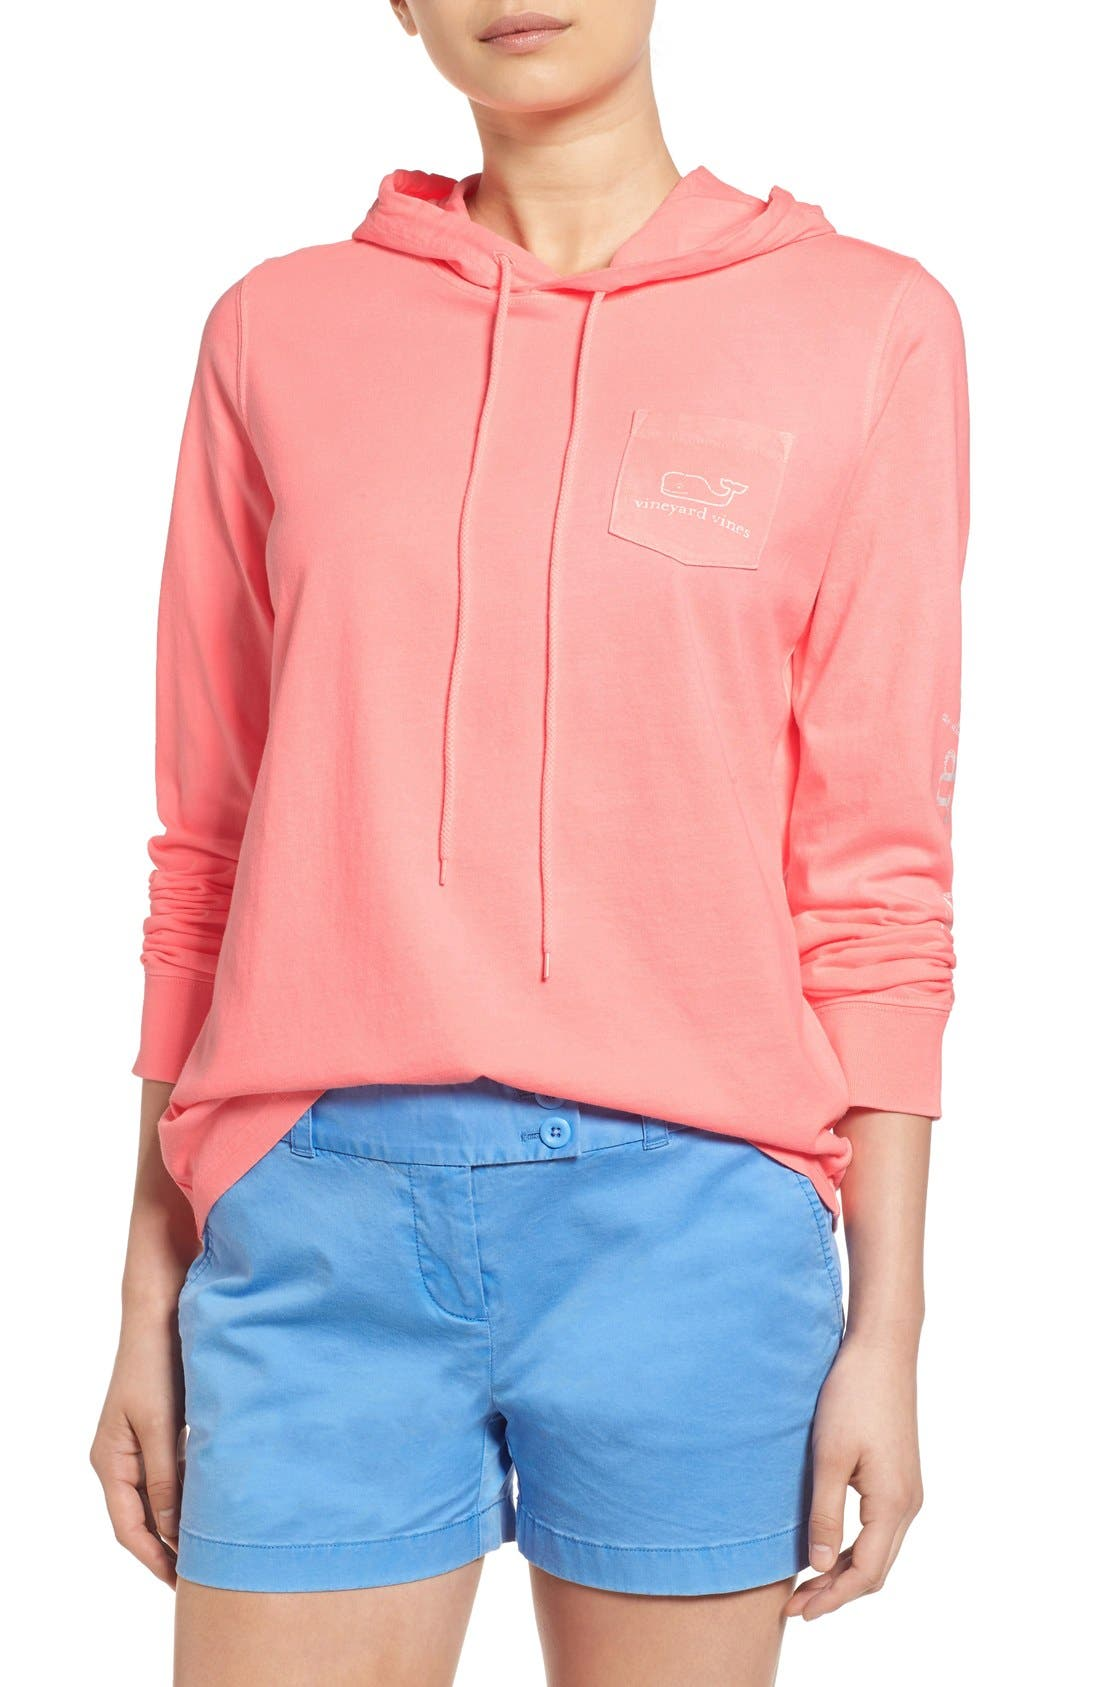 Alternate Image 1 Selected - Vineyard Vines Whale Graphic Long Sleeve Hooded Tee